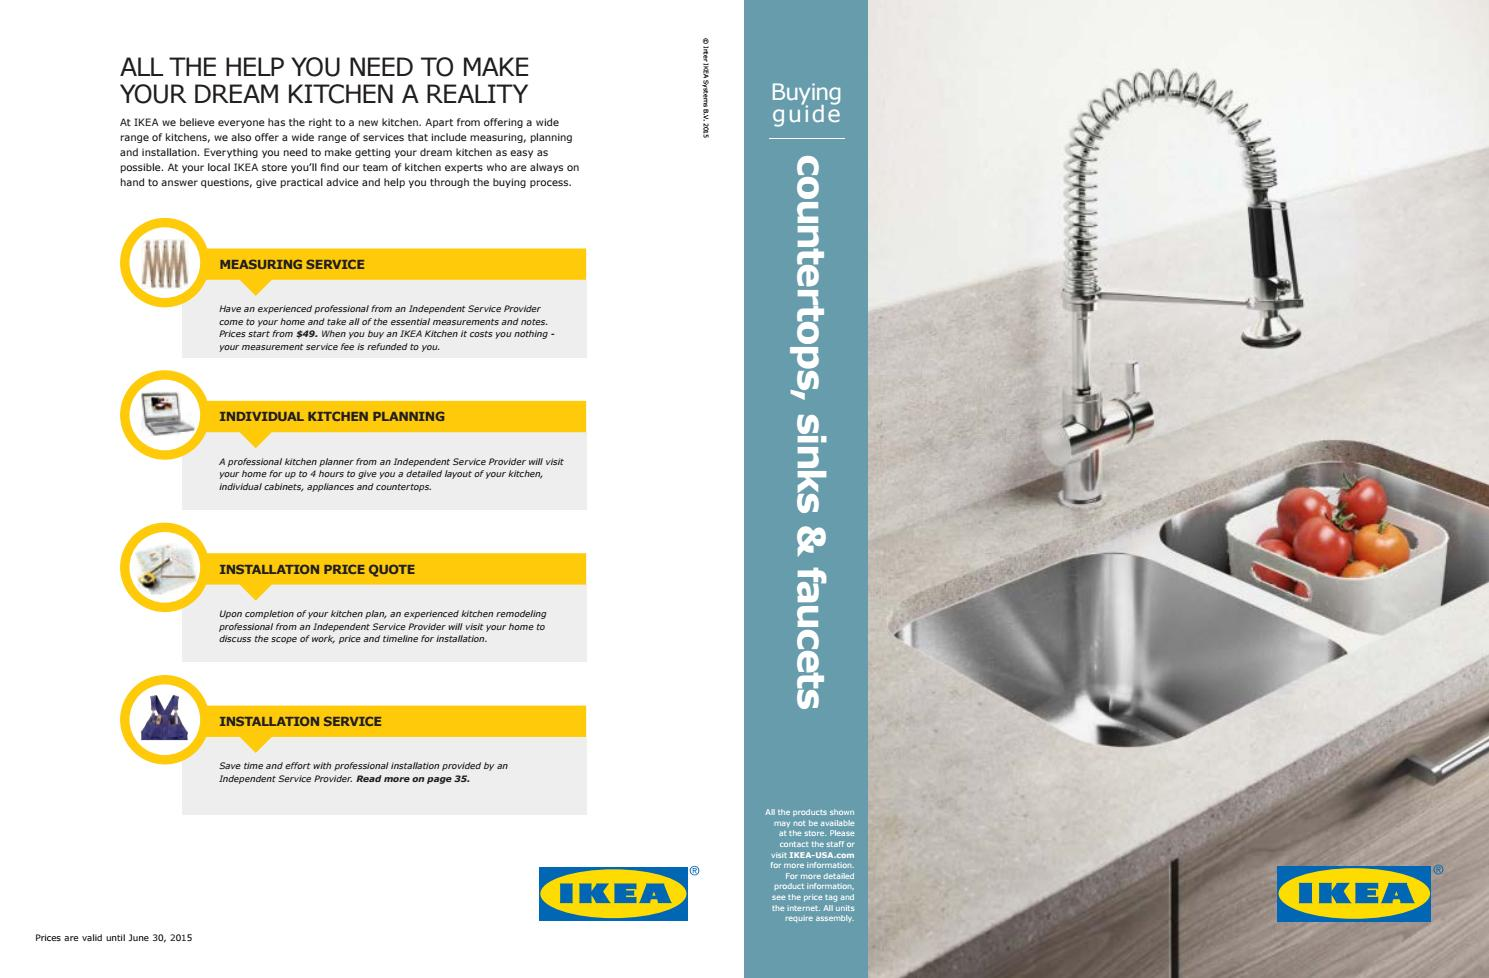 IKEA - KITCHEN by Home Design 2018 - issuu